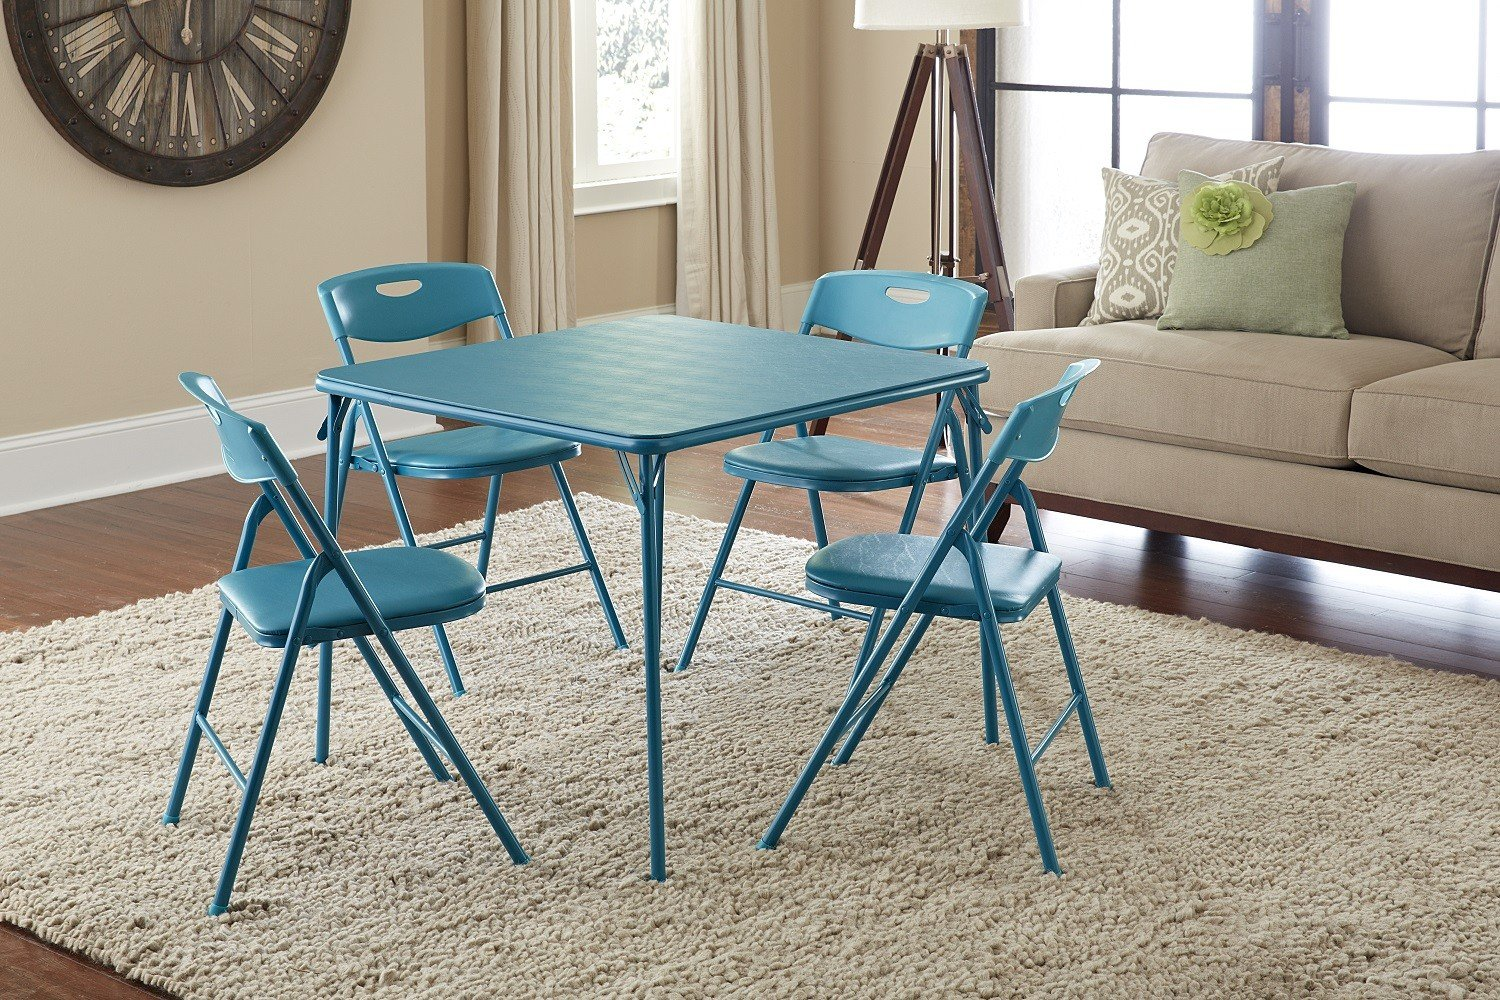 Amazoncom Cosco 5 Piece Folding Table and Chair Set Teal